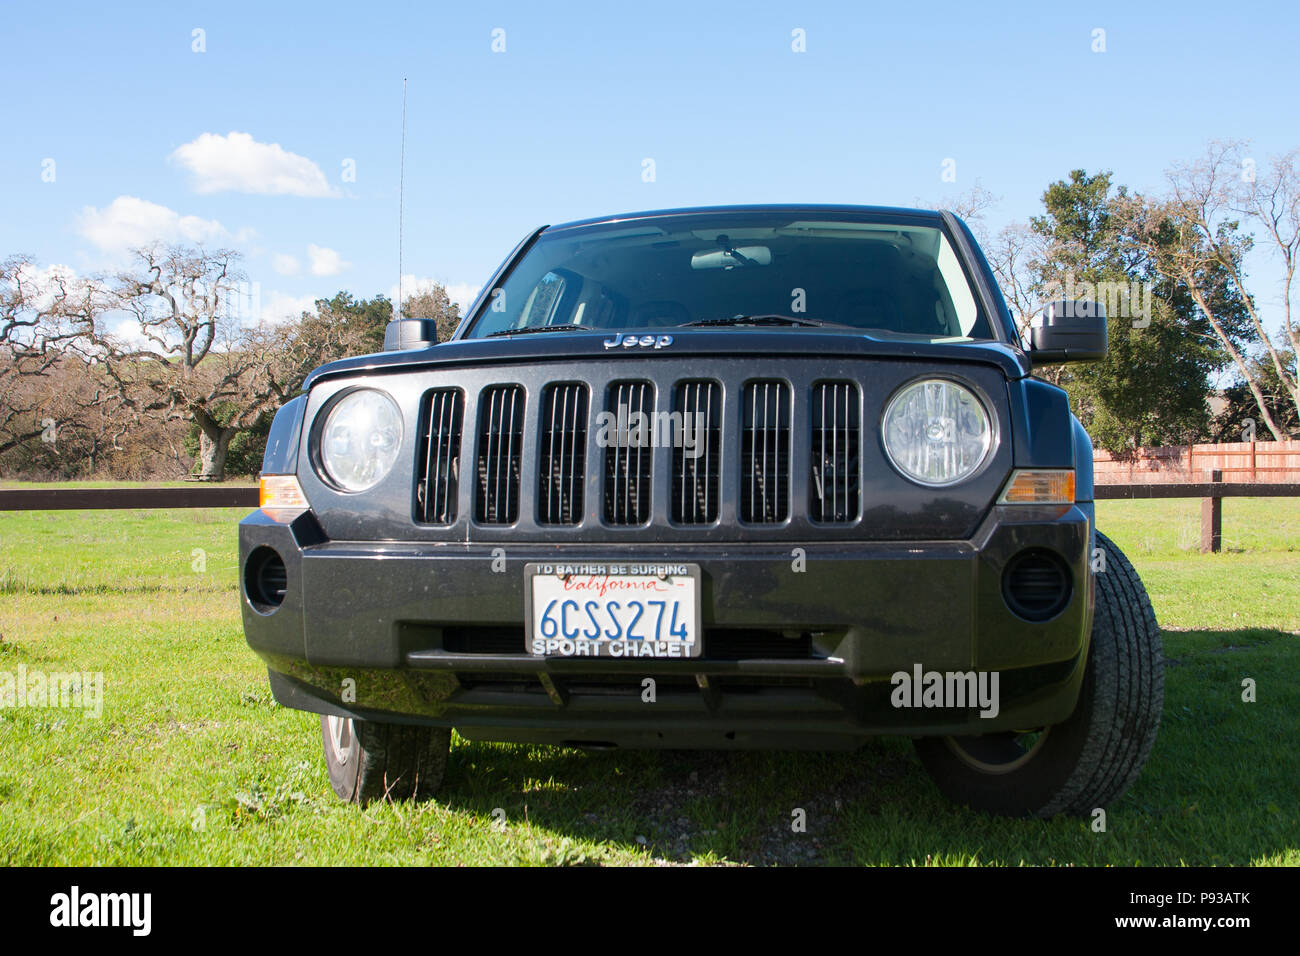 Black Jeep Patriot SUV (sport utility vehicle) in outdoor natural